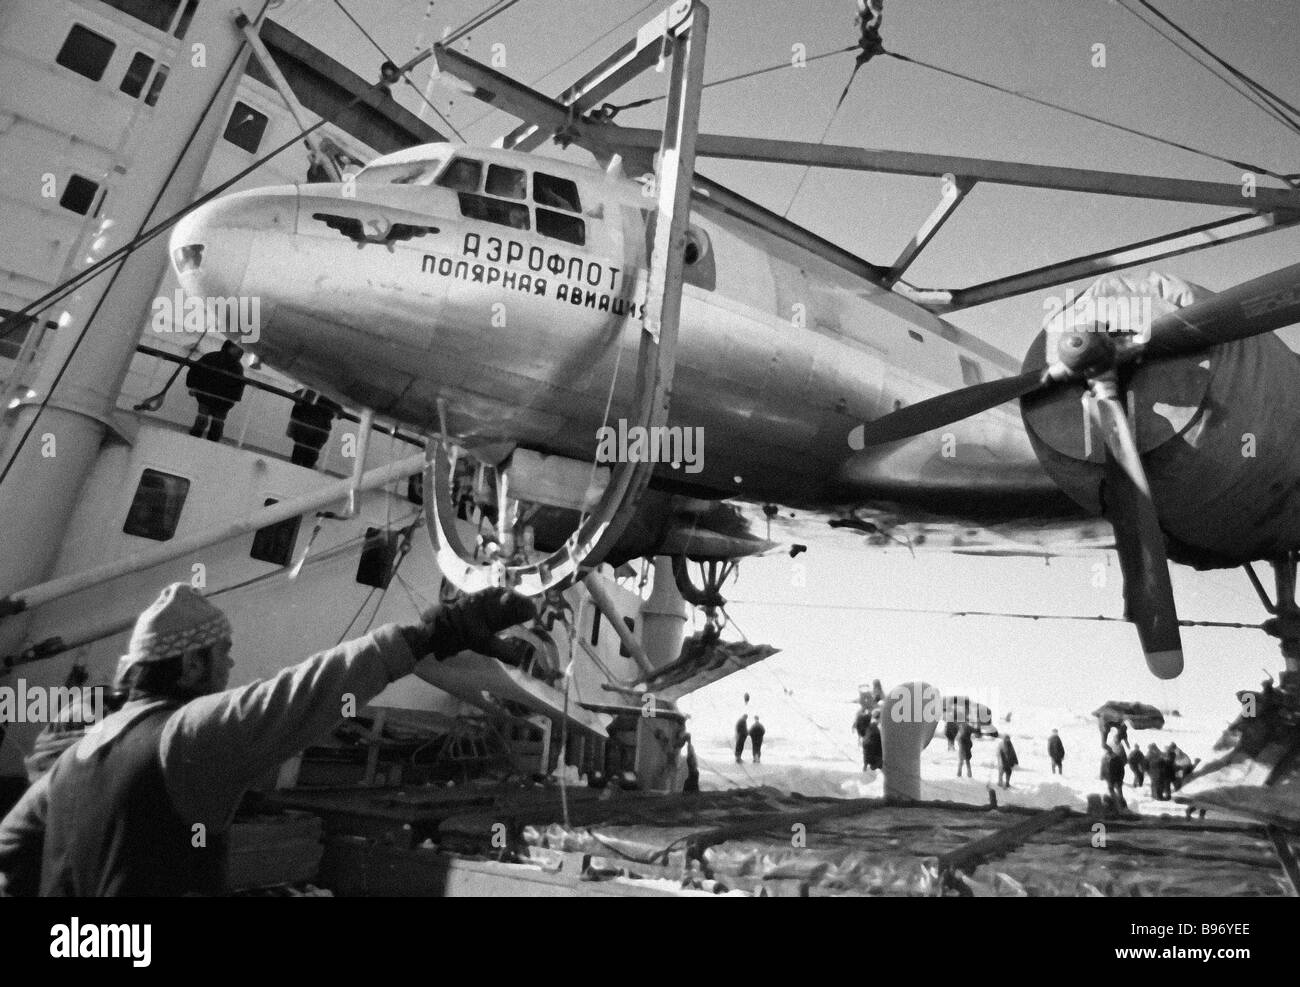 Polar aviation plane removed from ship in the Antarctic - Stock Image